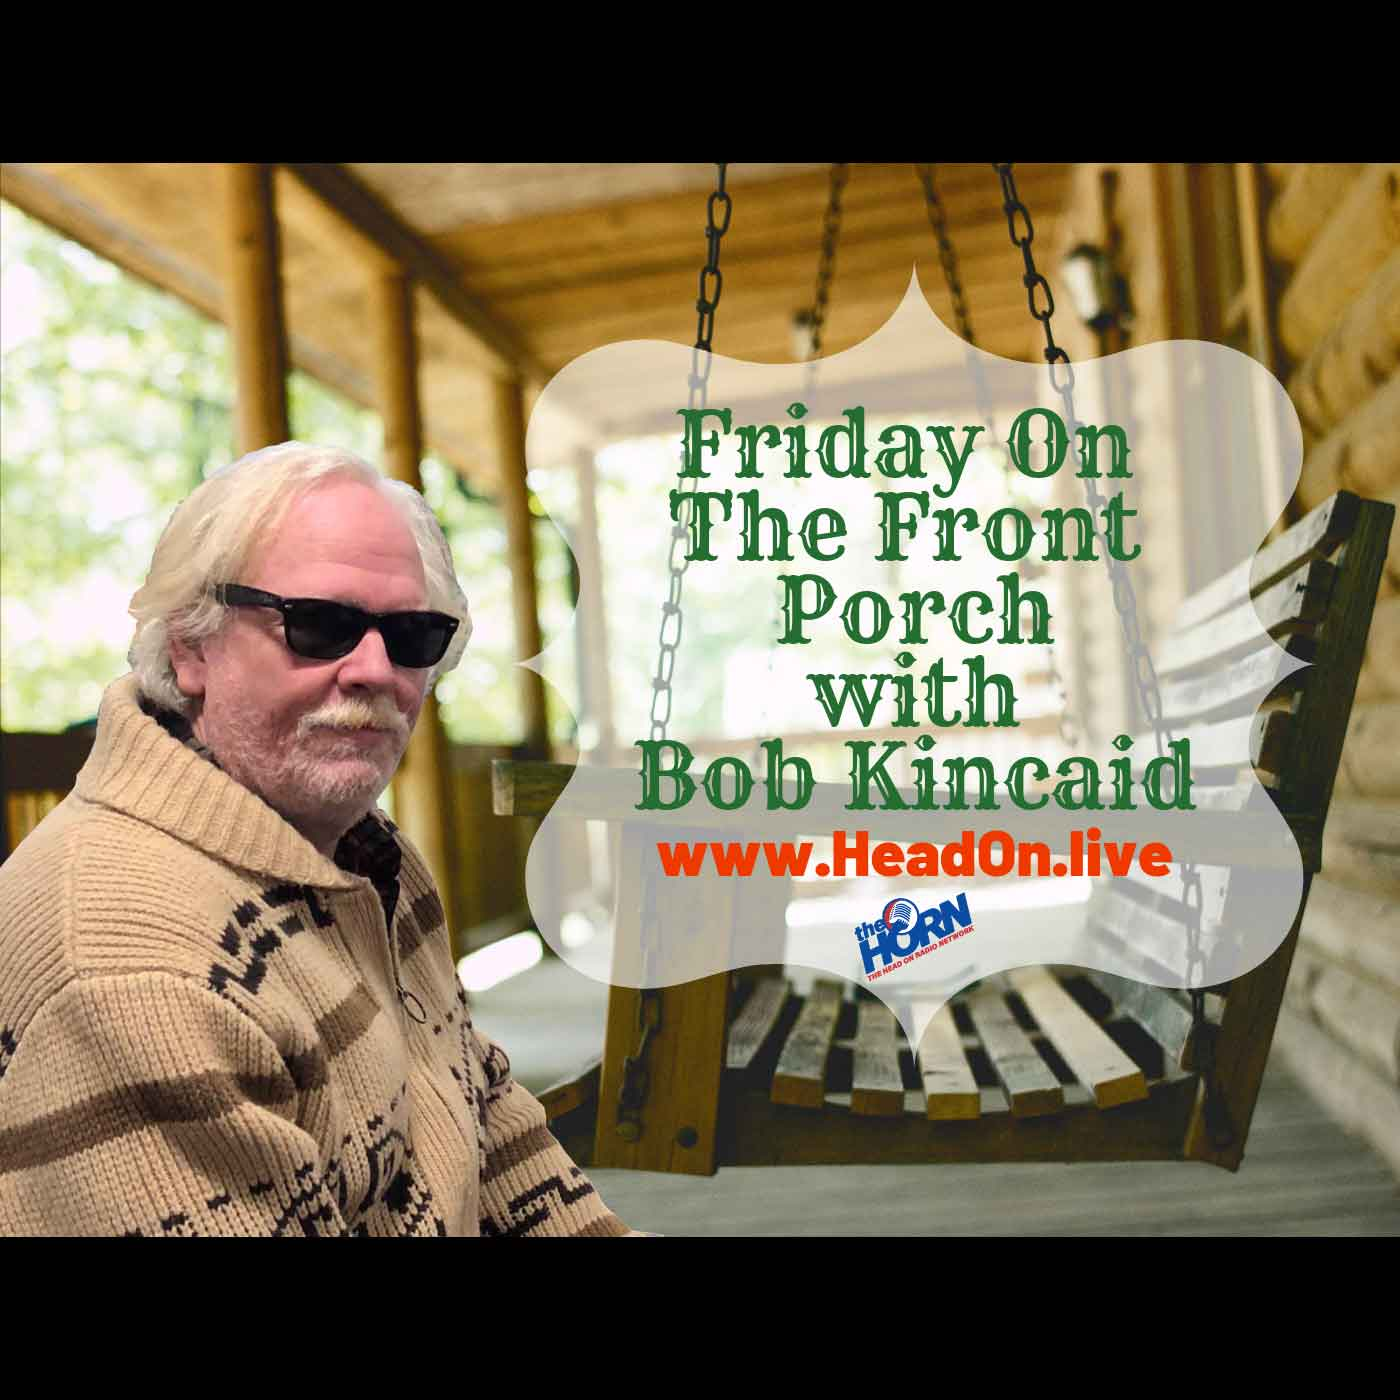 Fridarona-on-the-Front-Porch, Head-ON With Bob Kincaid, 5 June 2020